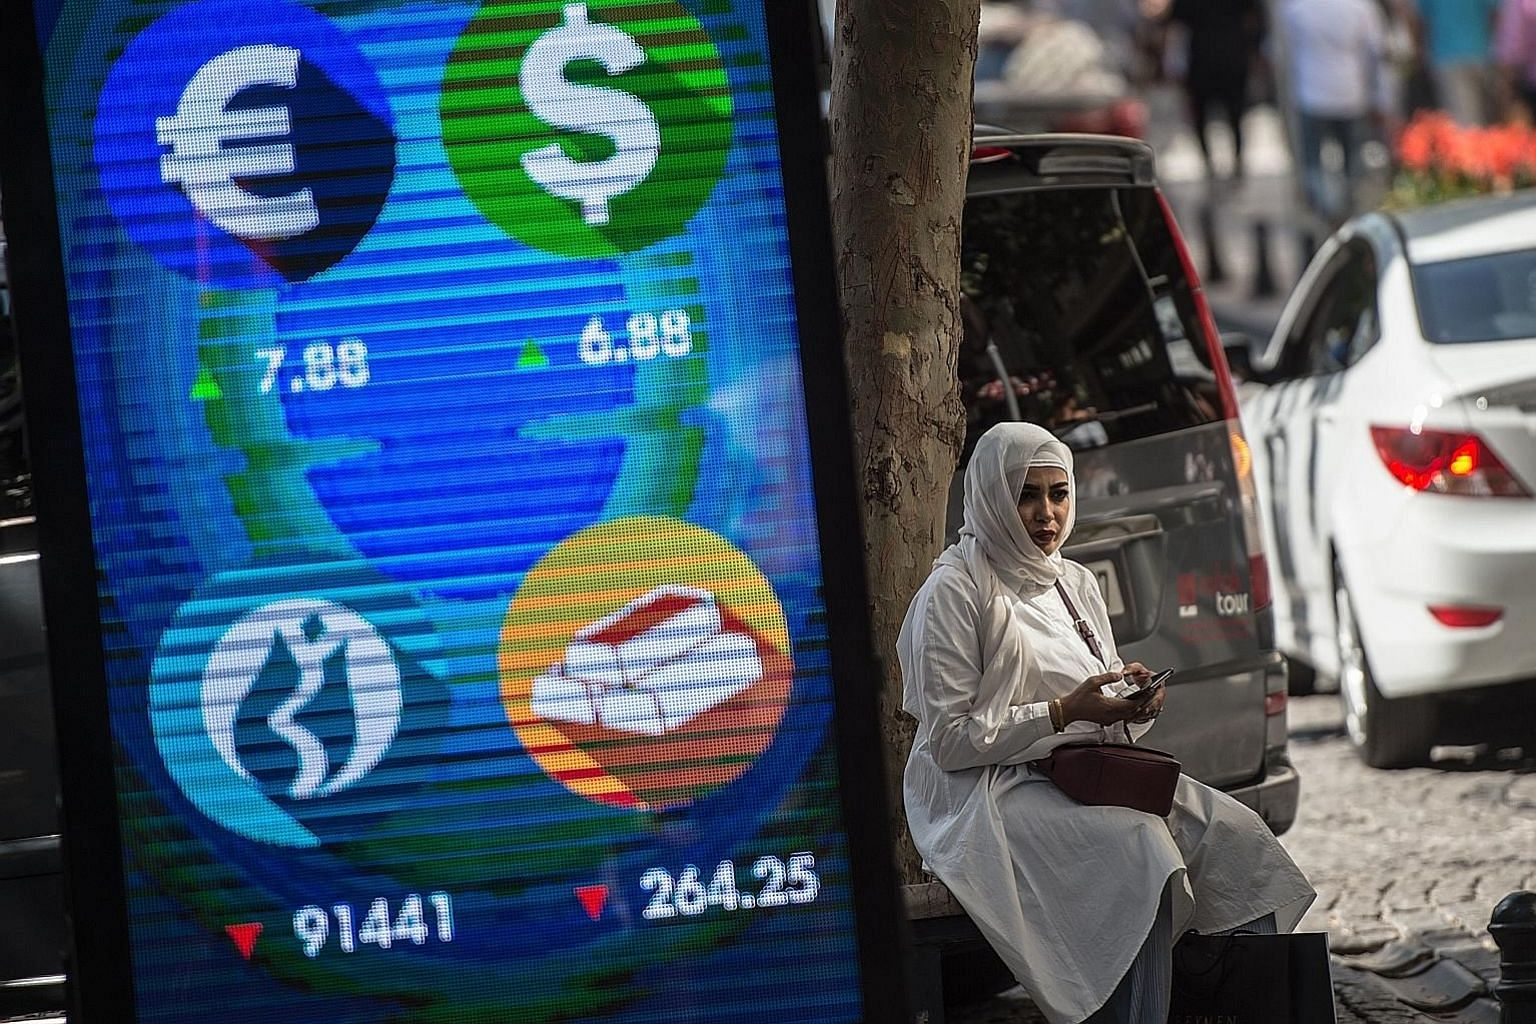 A digital billboard provided updates on various currencies and the Turkish stock exchange in Istanbul on Monday, as the country's lira tumbled against the US dollar, fuelling fears the country's crisis could spill over into the world economy.